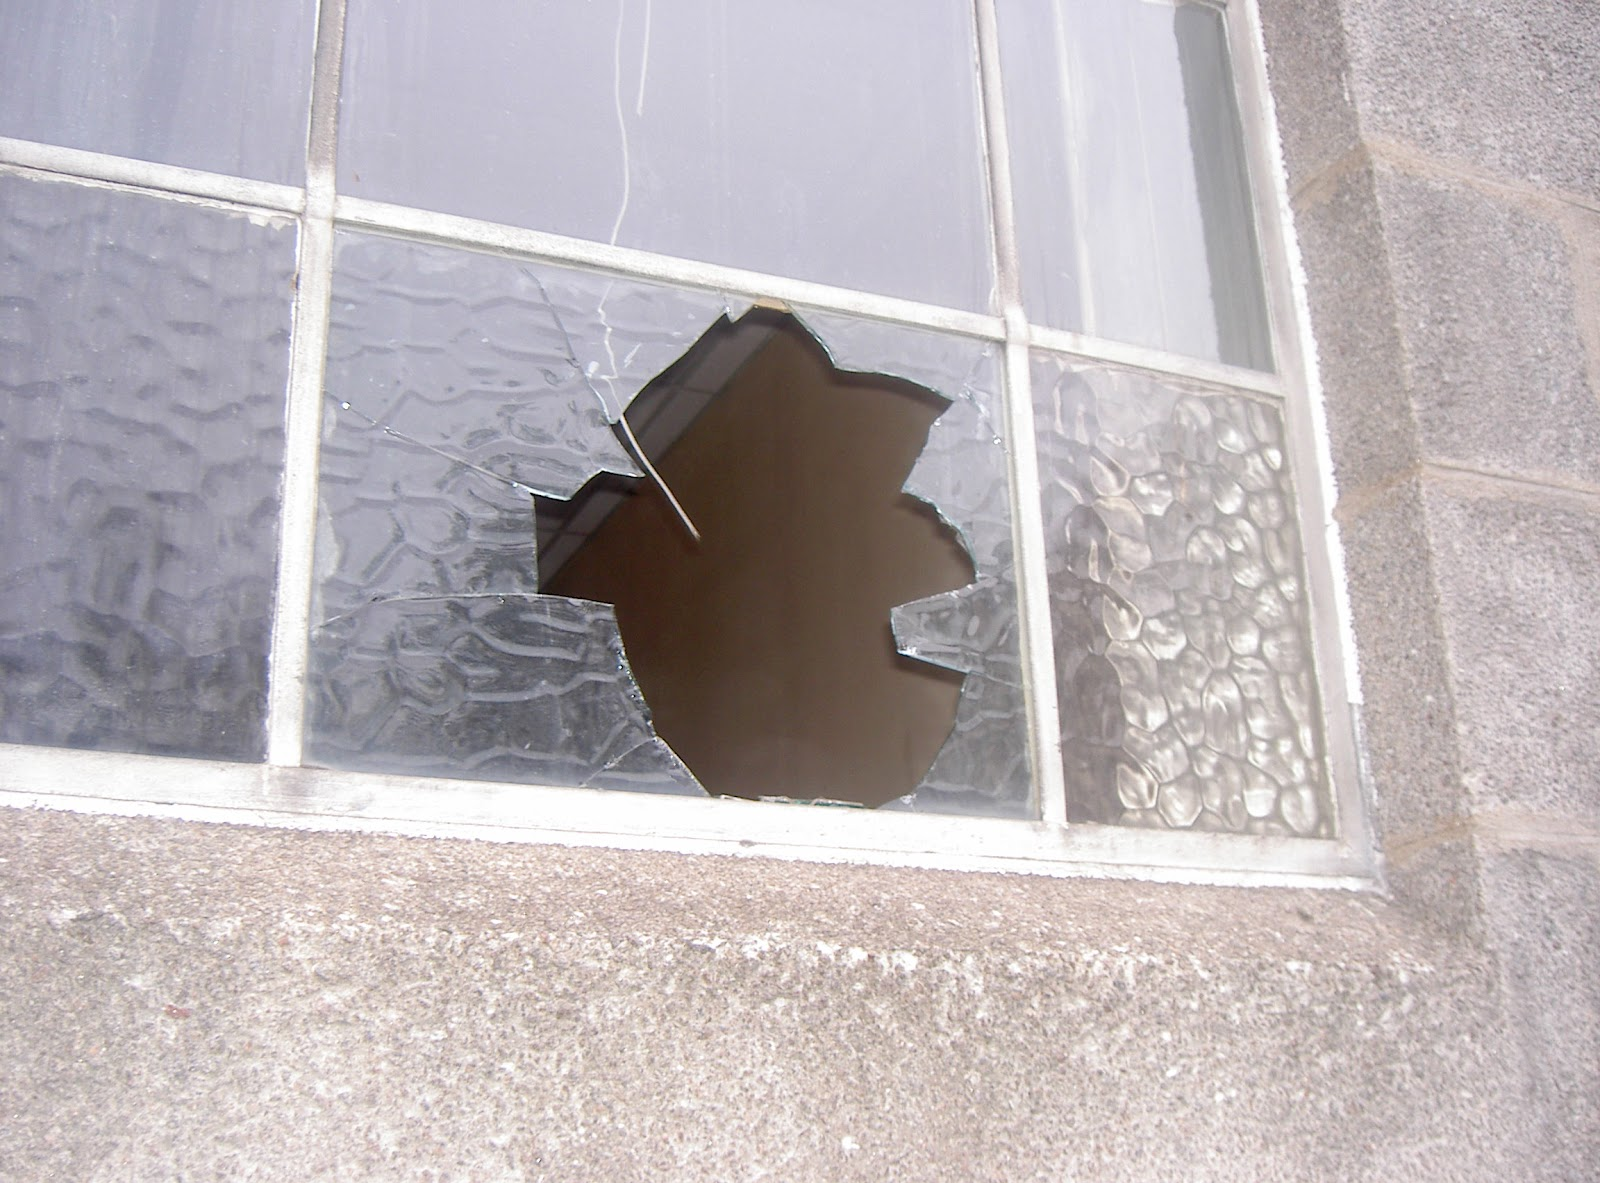 Broken Glass Window : Getting to the truth of matter